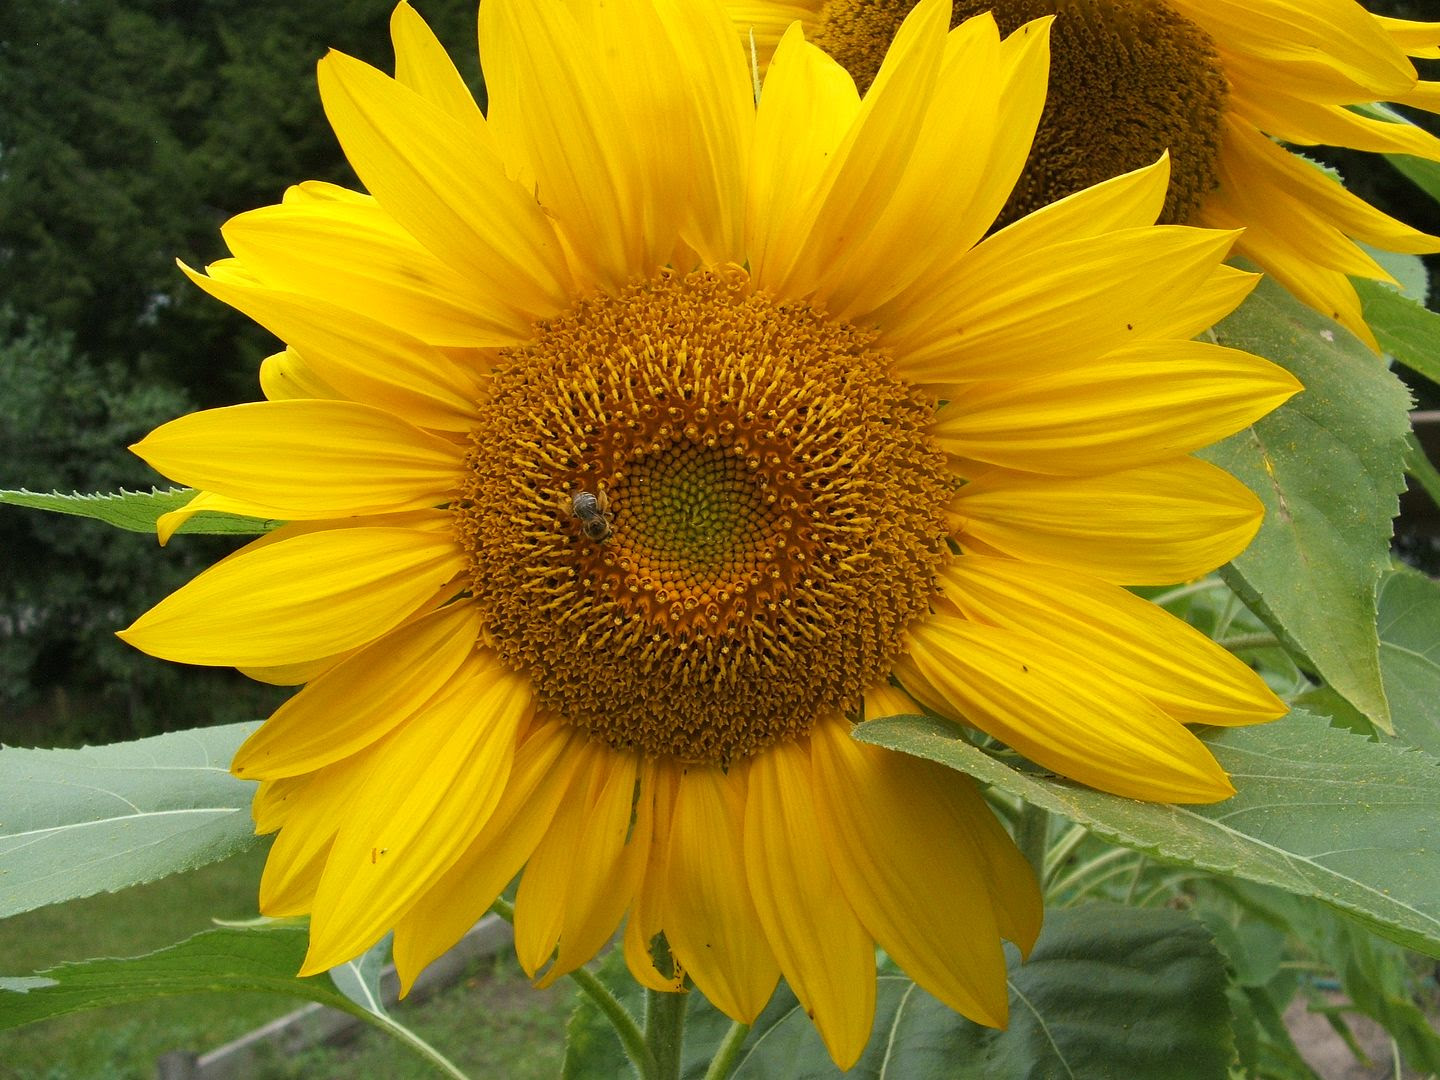 Giant Gray Stripe Sunflower by Angie Ouellette-Tower for godsgrowinggarden.com photo 004_zps2eeb2037.jpg